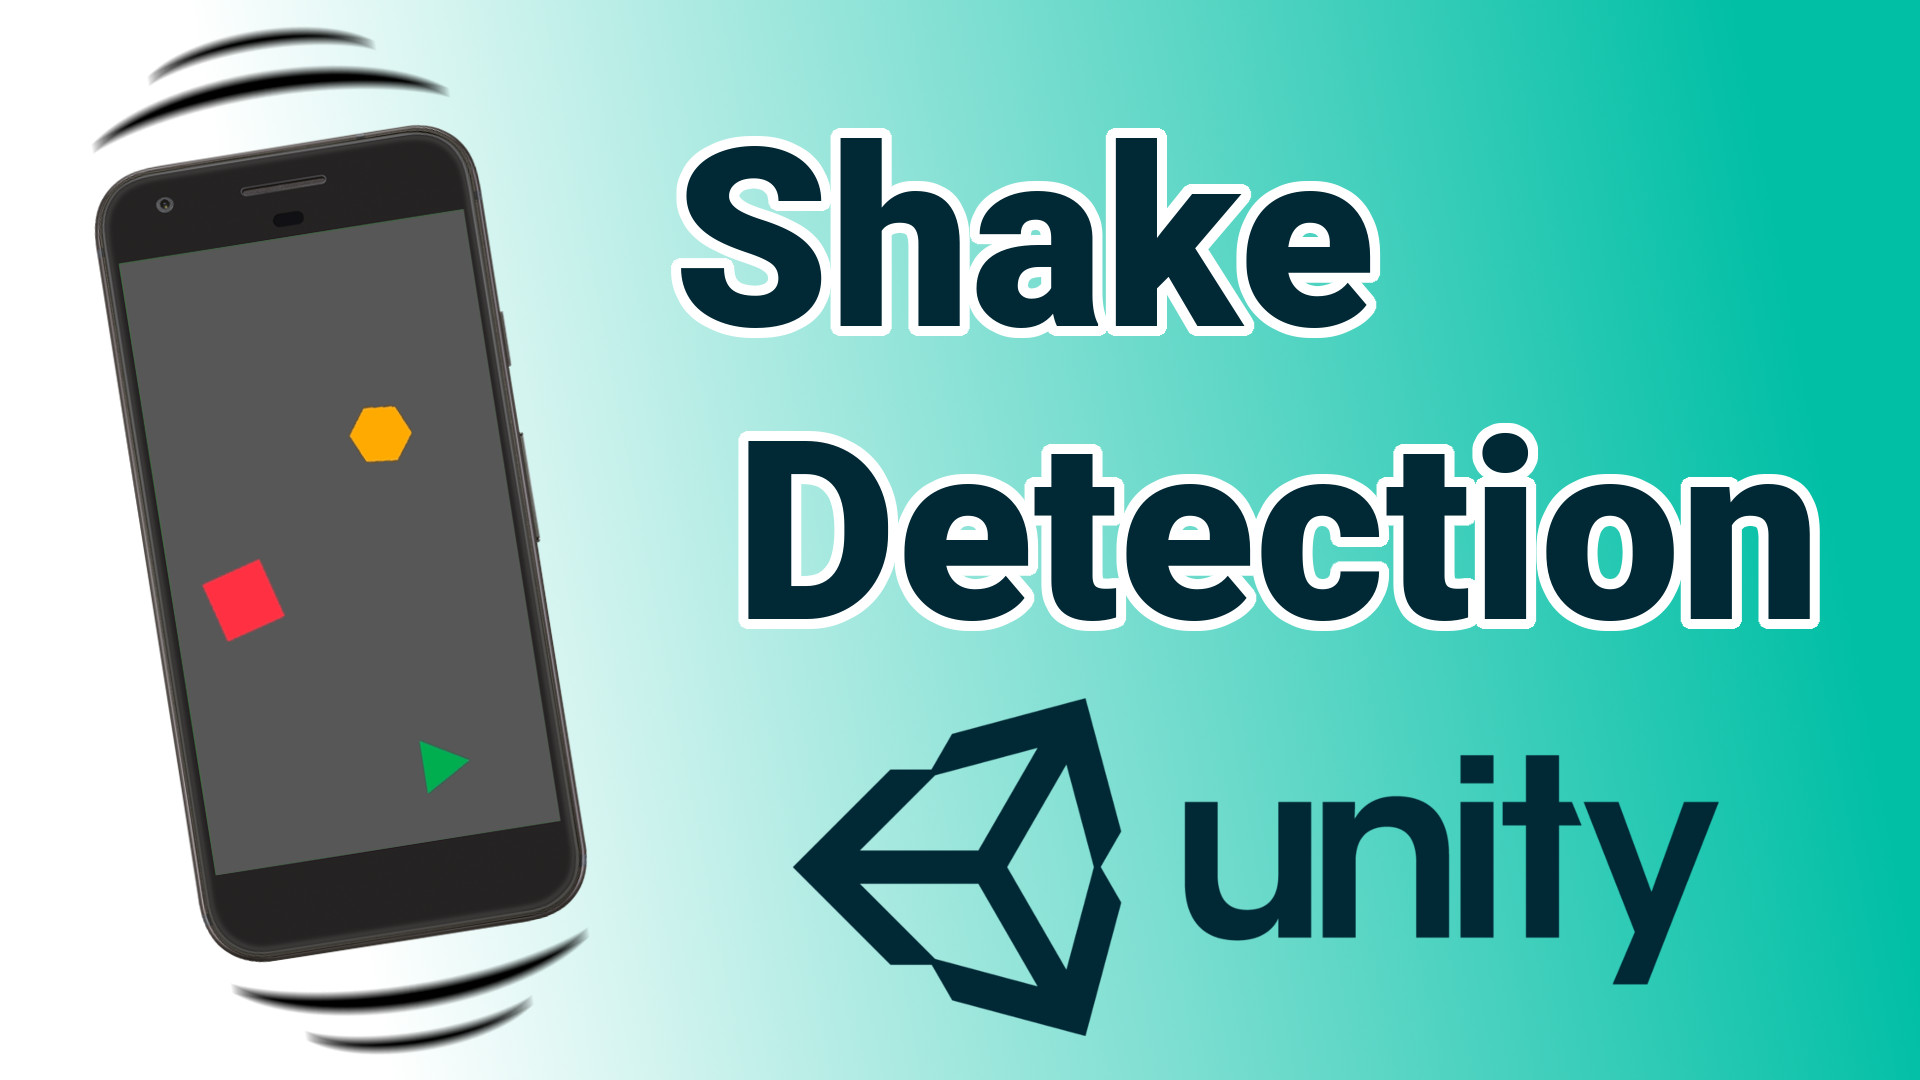 Shake Detecion for Mobile Devices in Unity (Android, iOS) – Reso Coder